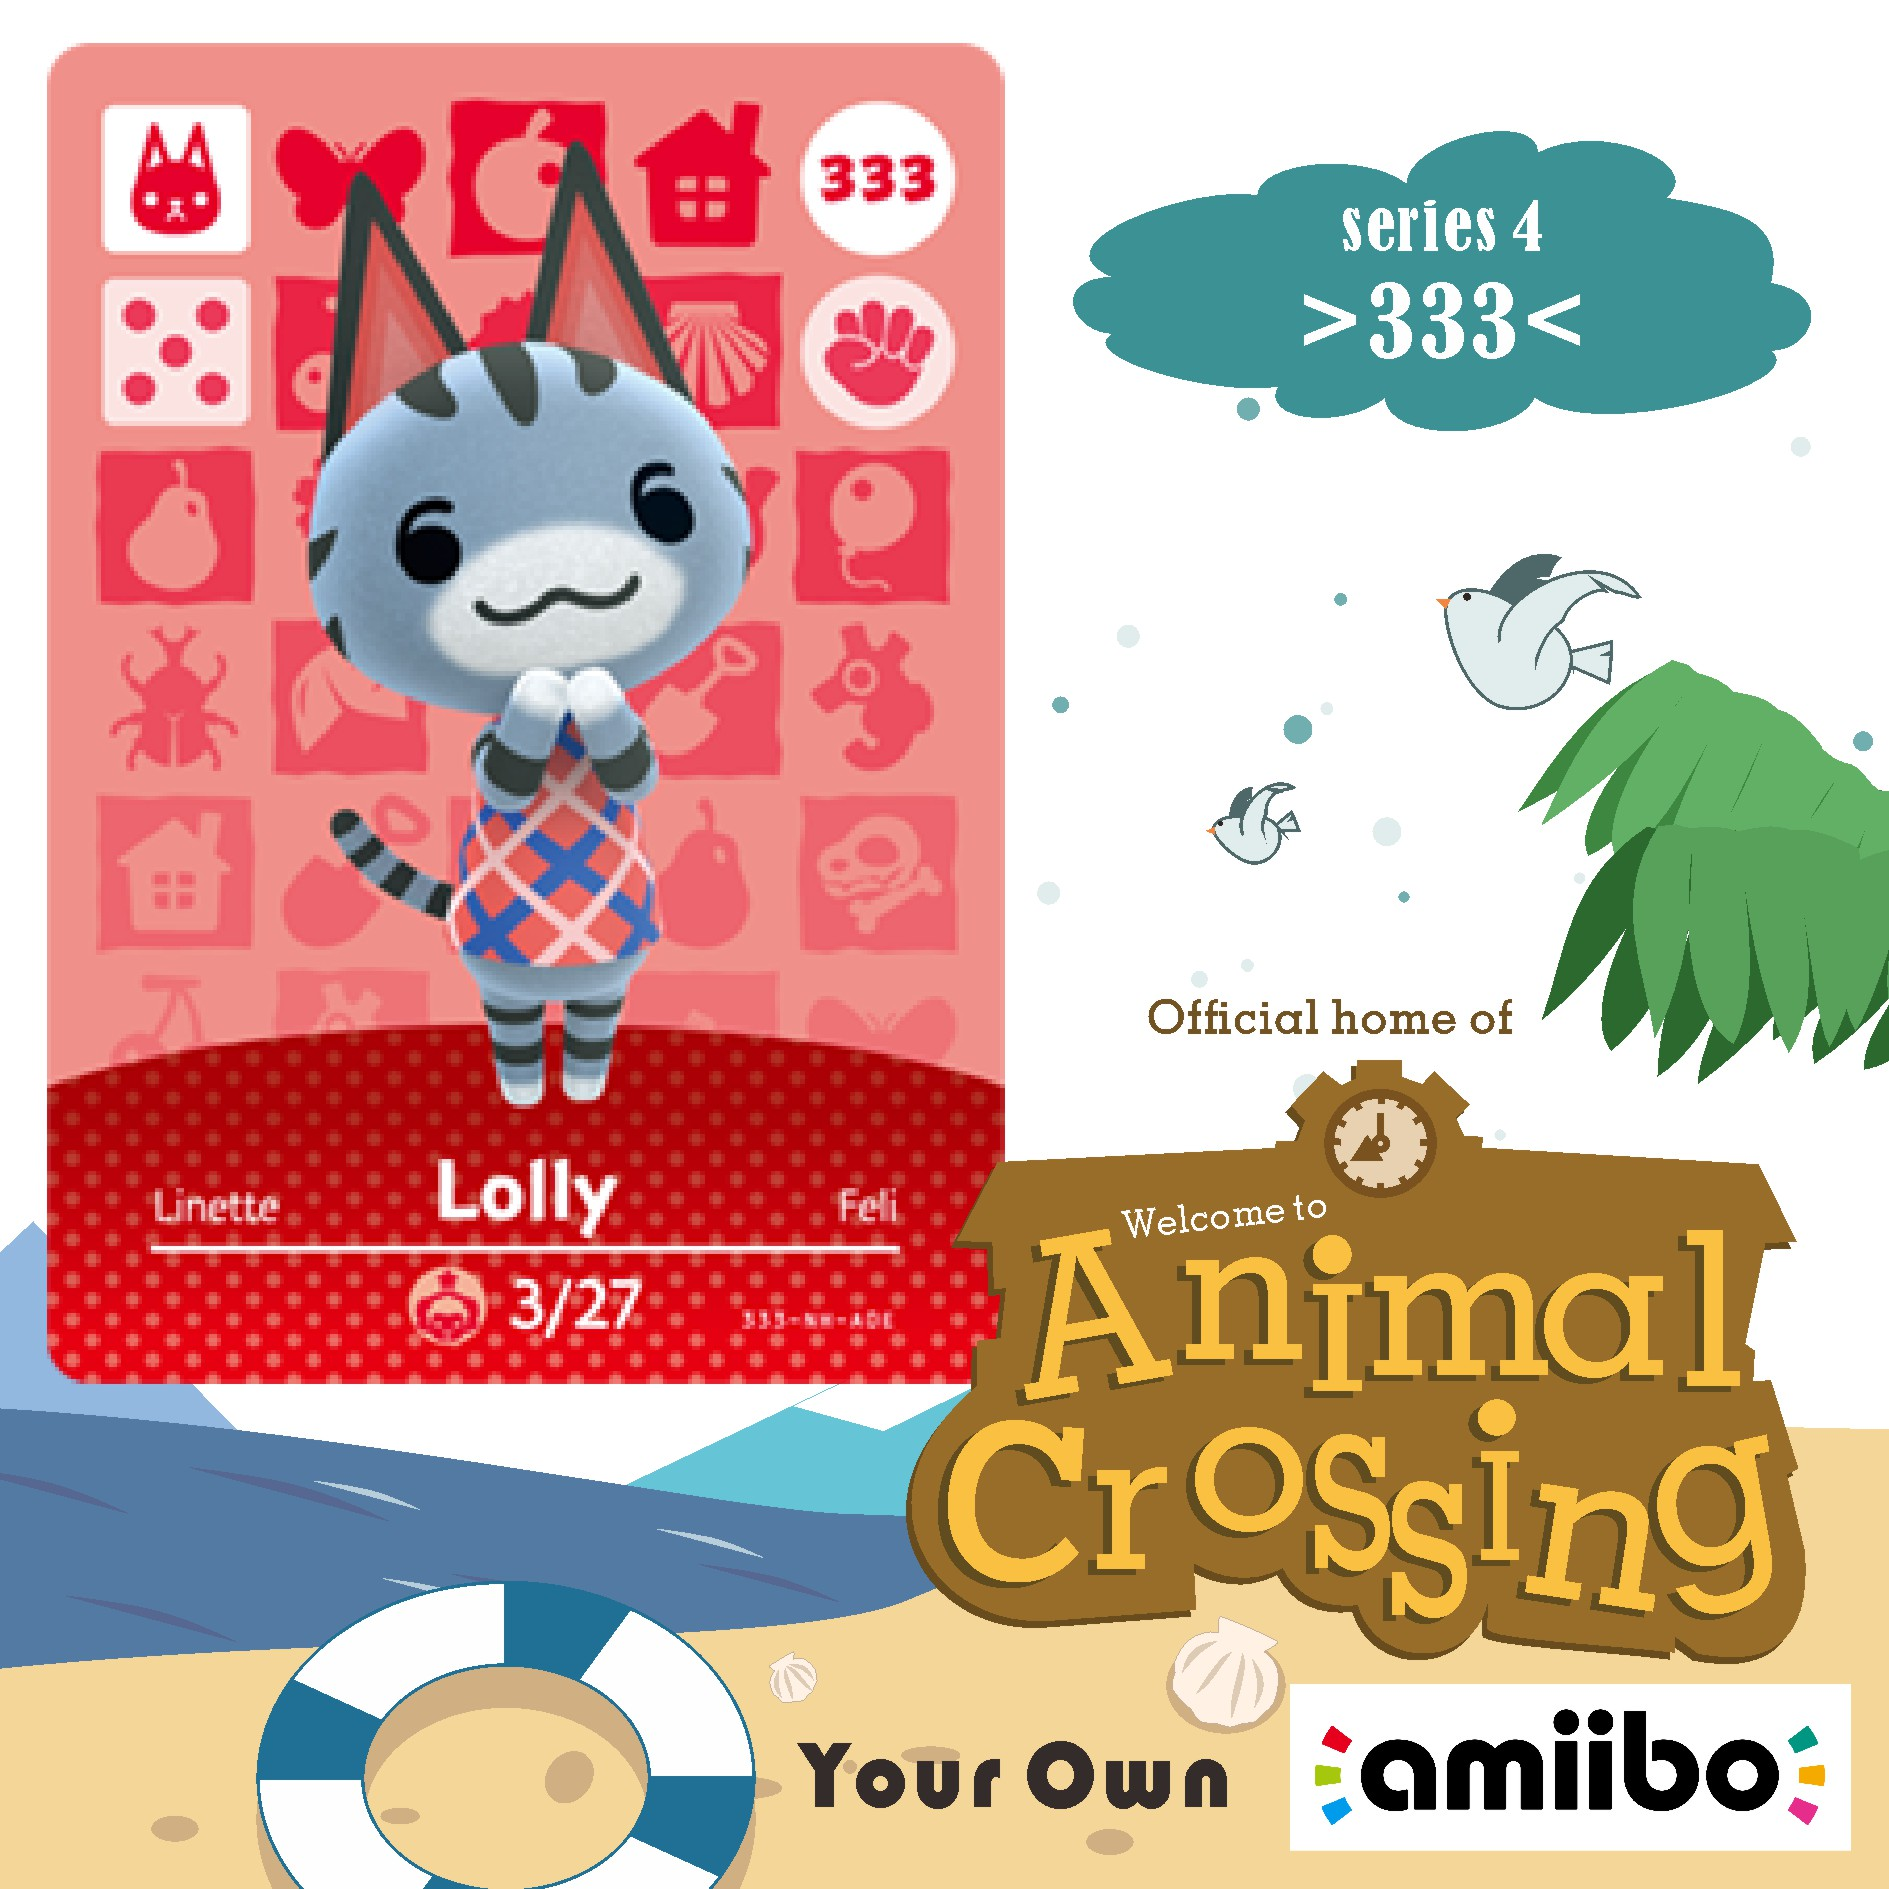 Amiibo Animal Crossing Amiibo Lolly 333 New Horizons Welcome Amiibo Villager Card 333 Lolly For NS Game Season Set Series 4